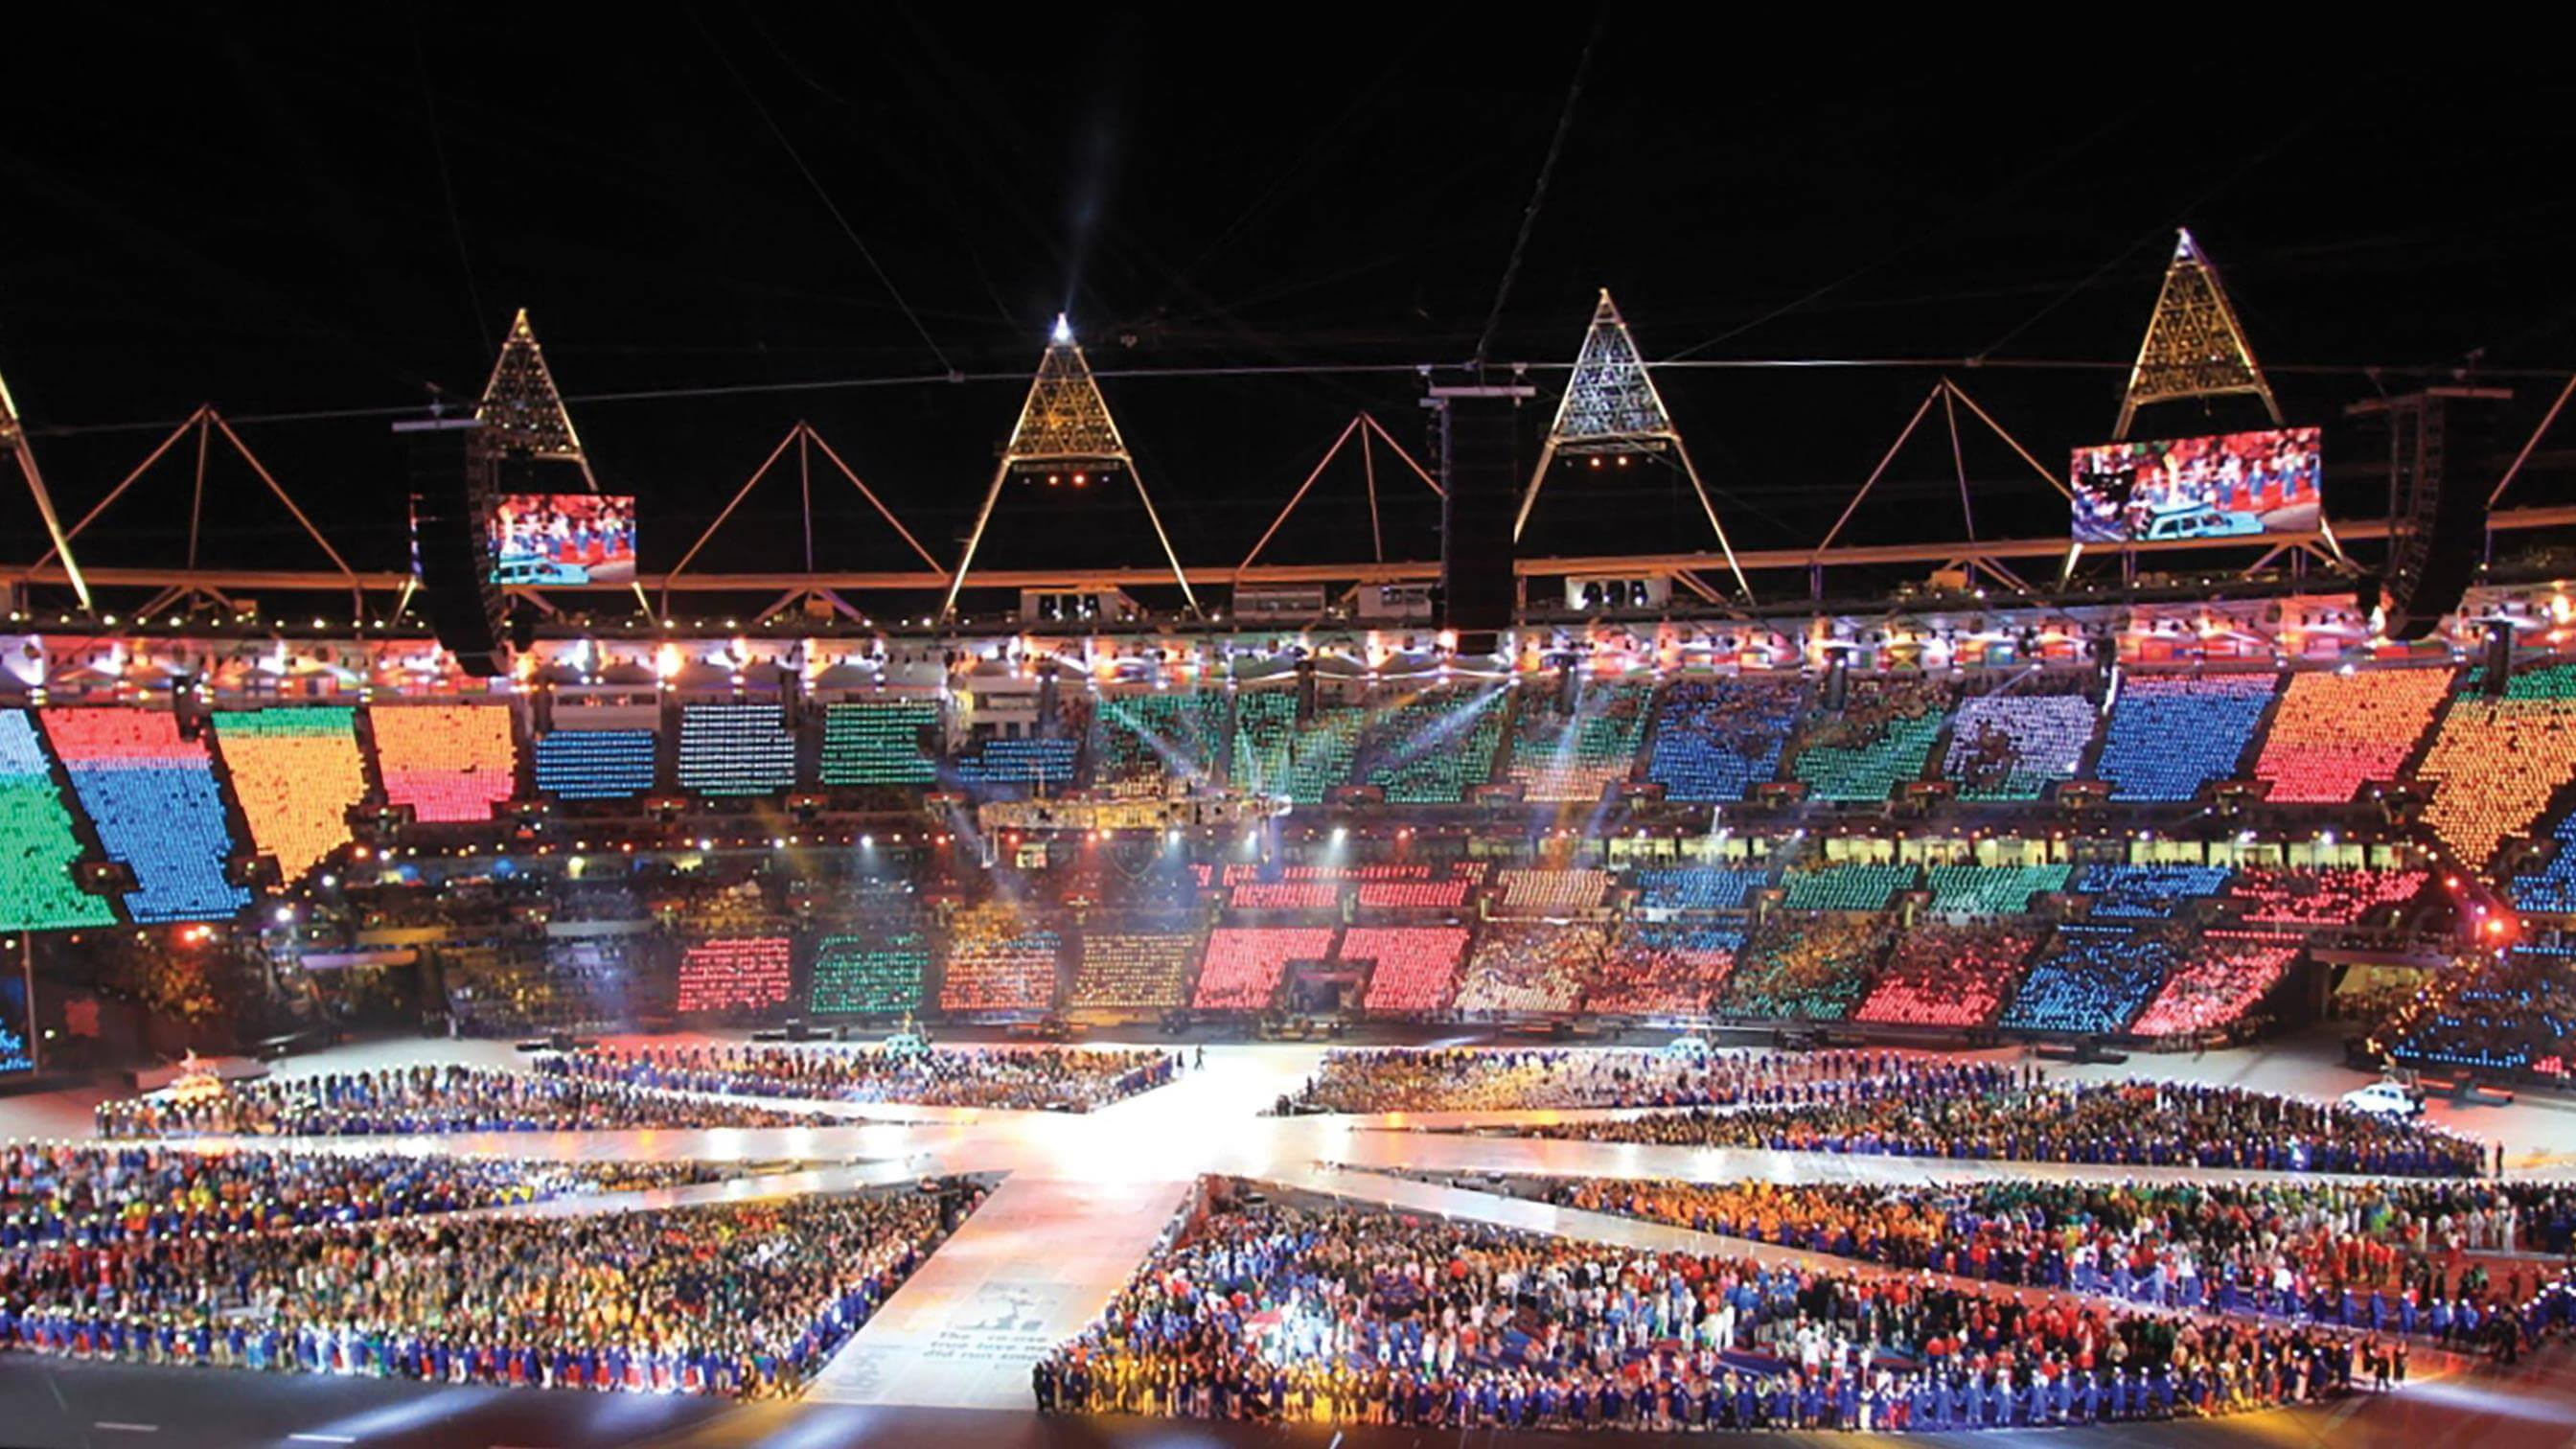 Power partner to London 2012